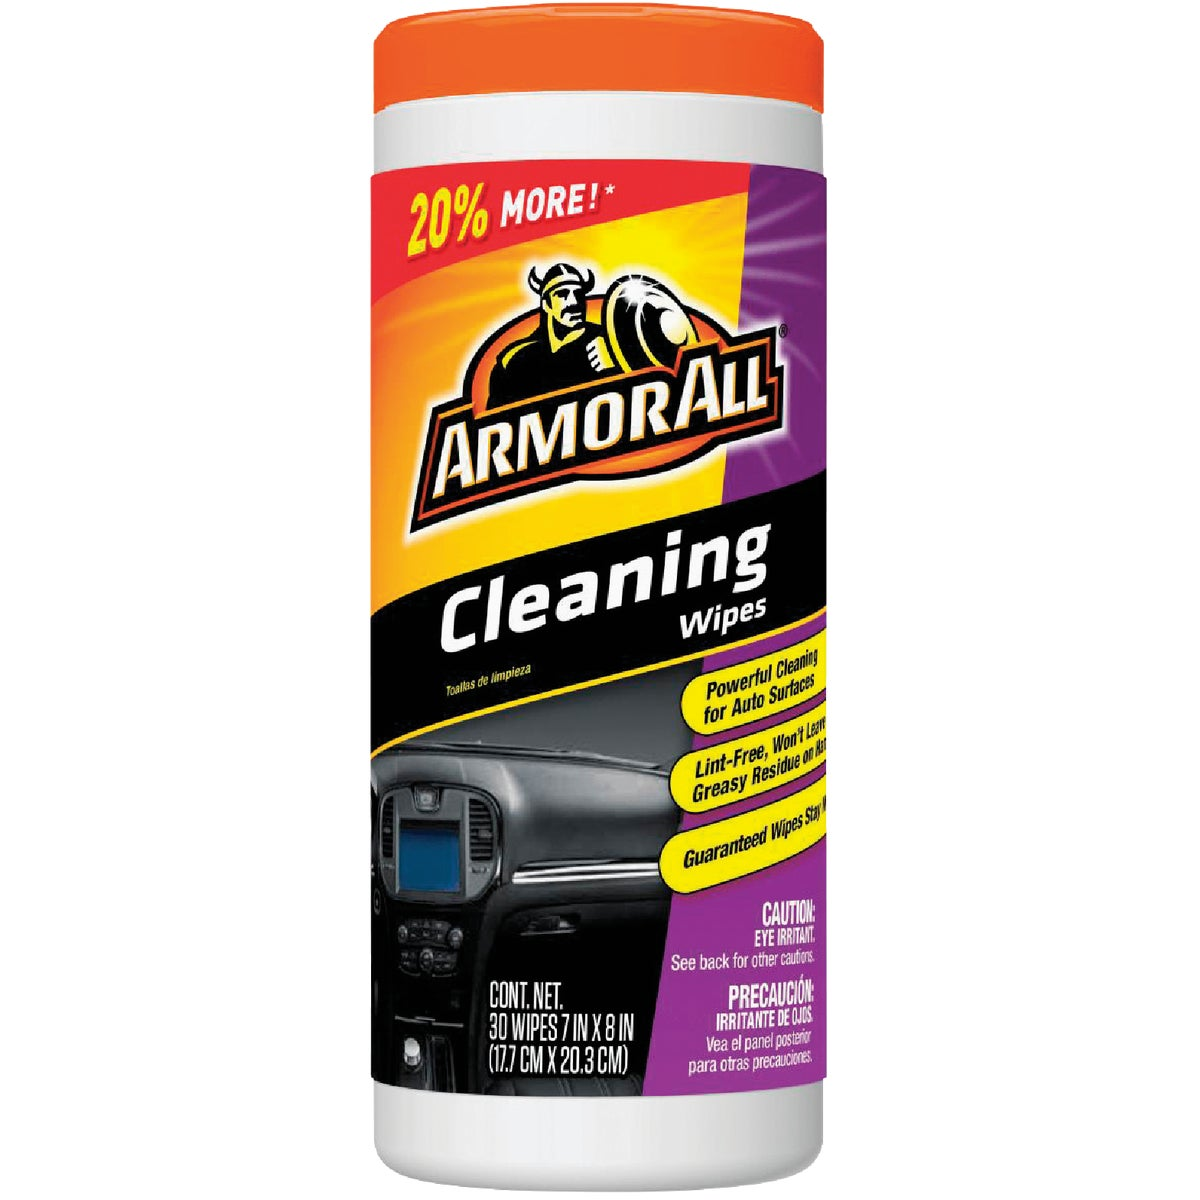 Armor All Cleaning Multi-Purpose Wipes